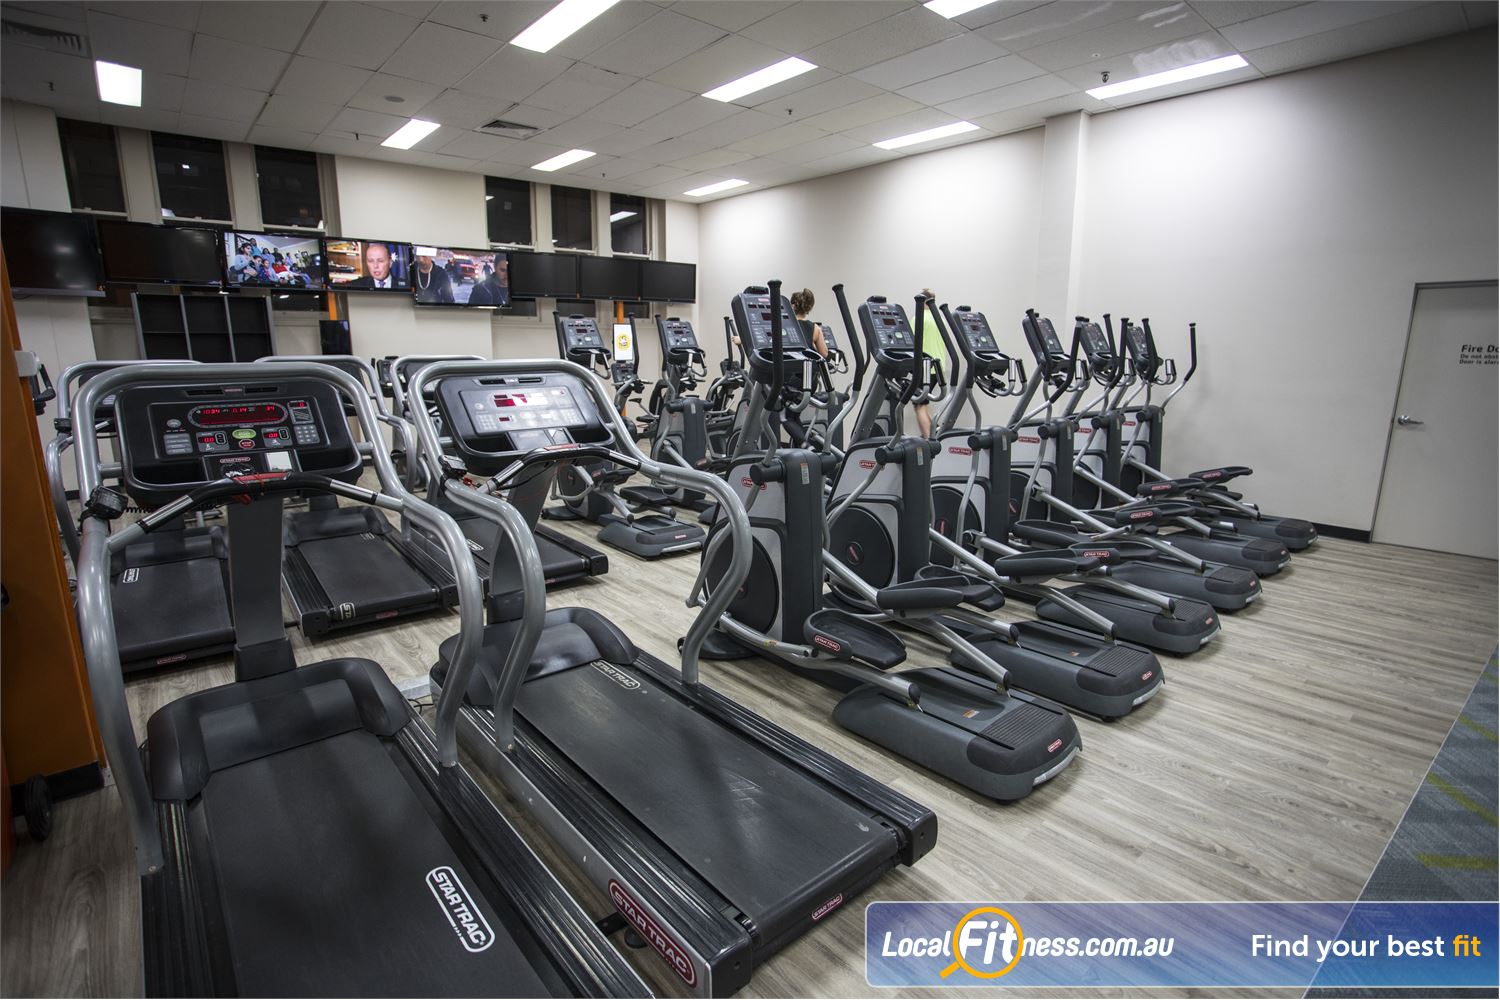 Fit n Fast Sydney Get your heart pumping in our Sydney gym cardio area.